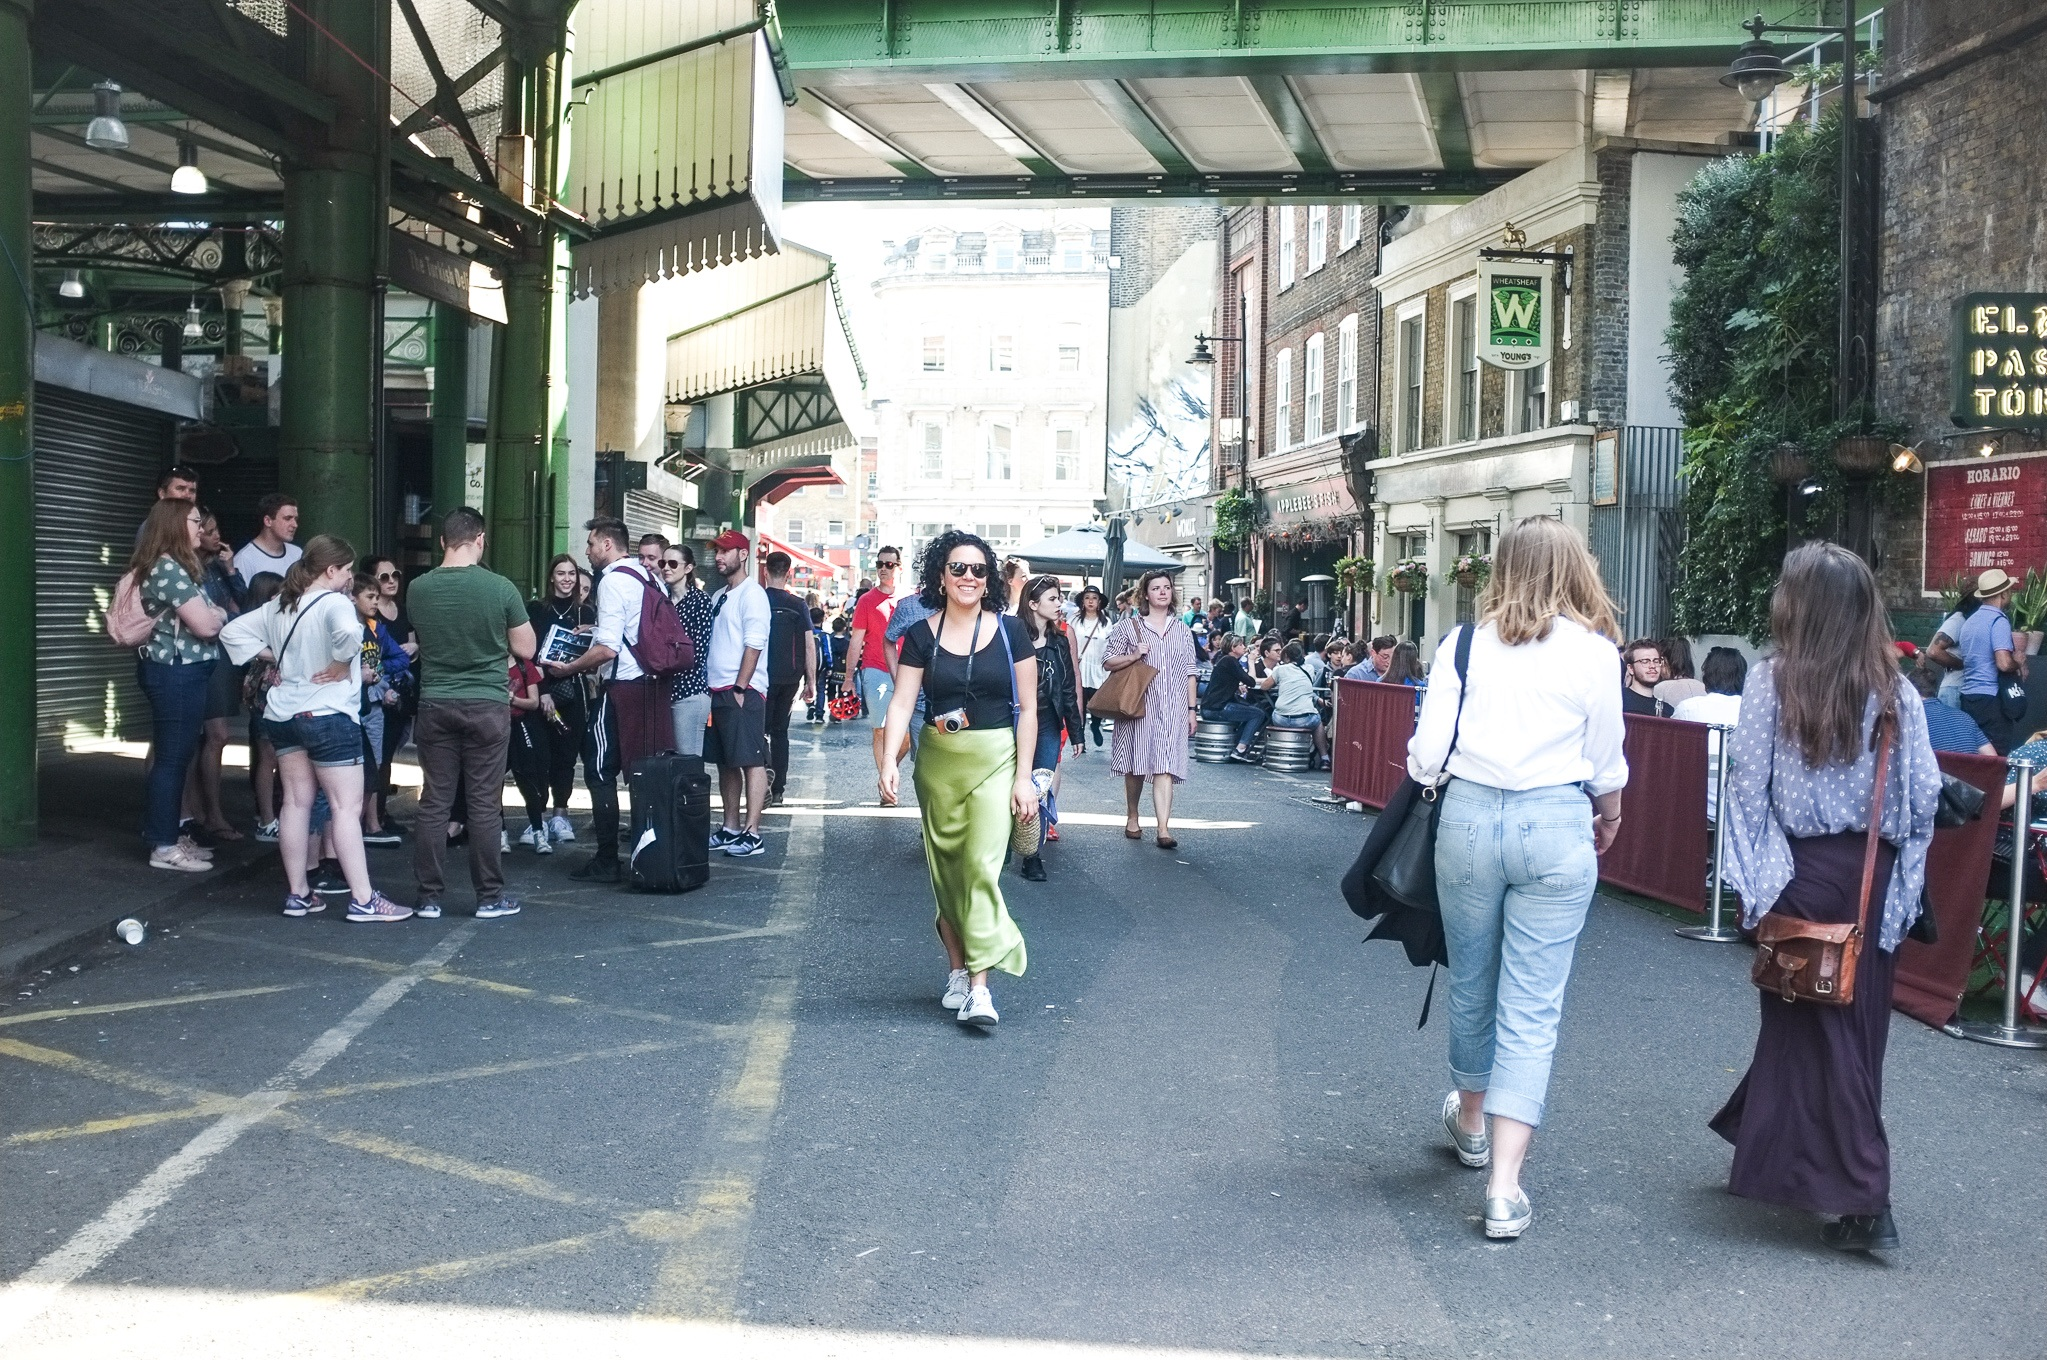 Having a wander through London's famous Borough Market